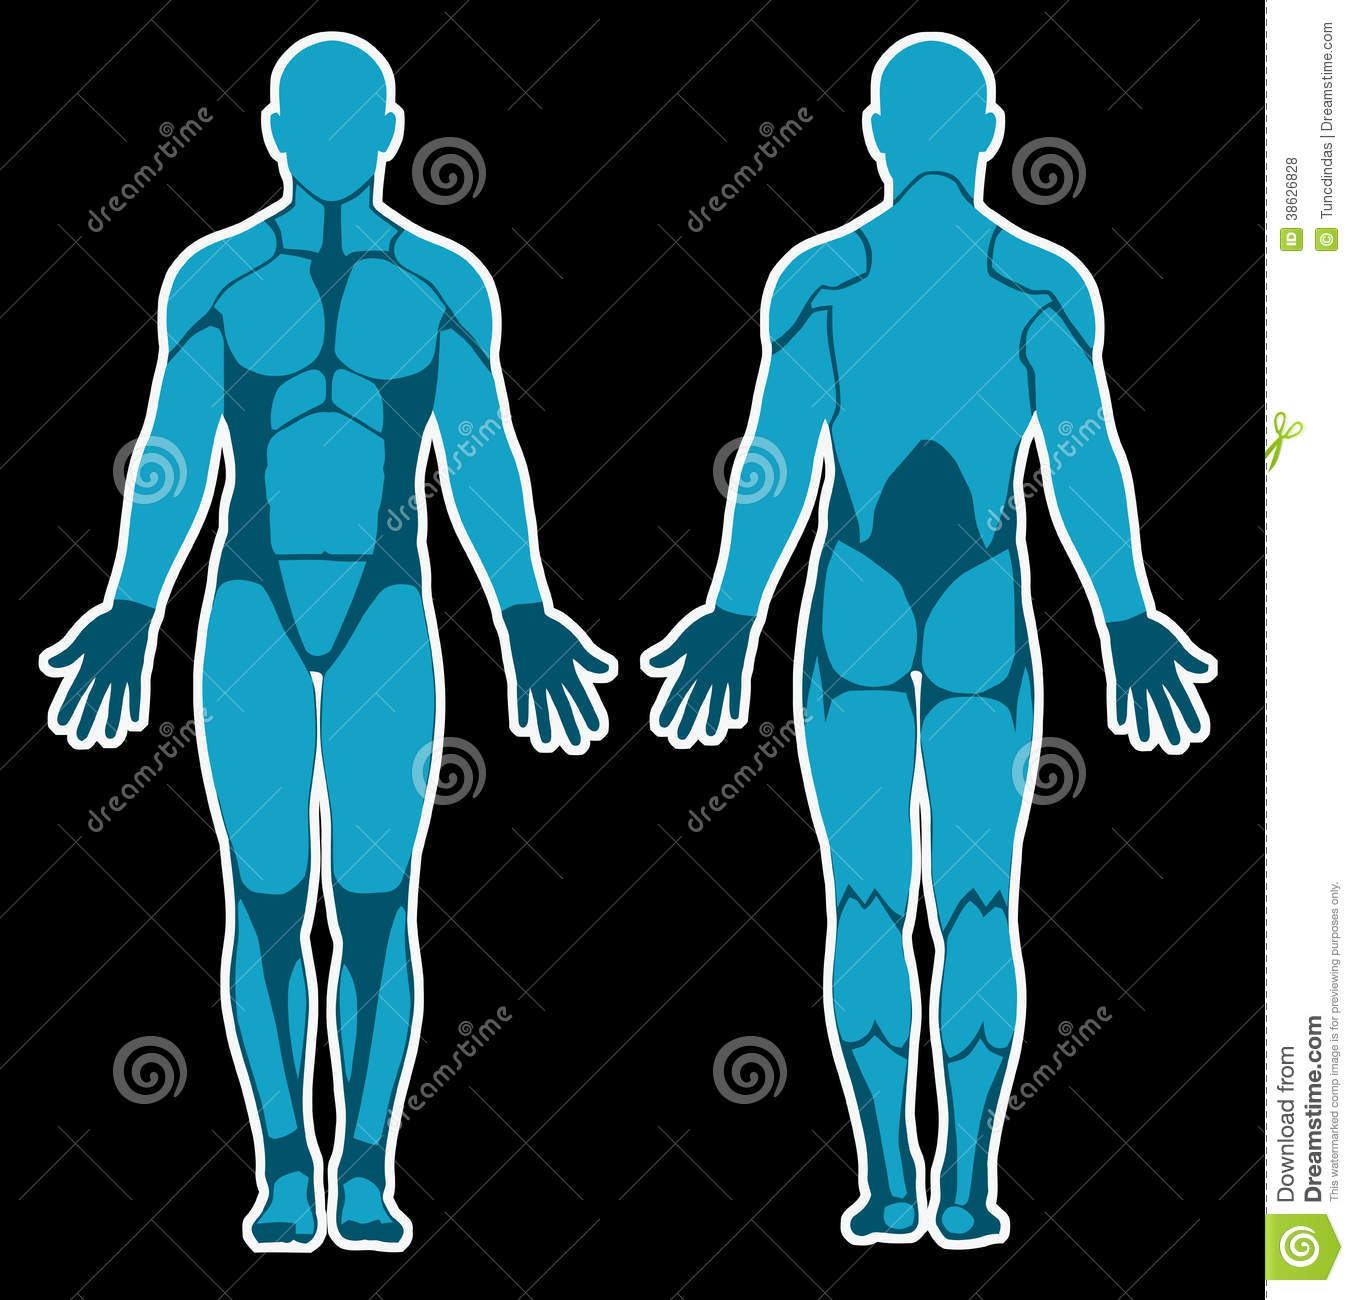 Human anatomy stock illustration illustration of vector 38626828 human anatomy ccuart Images